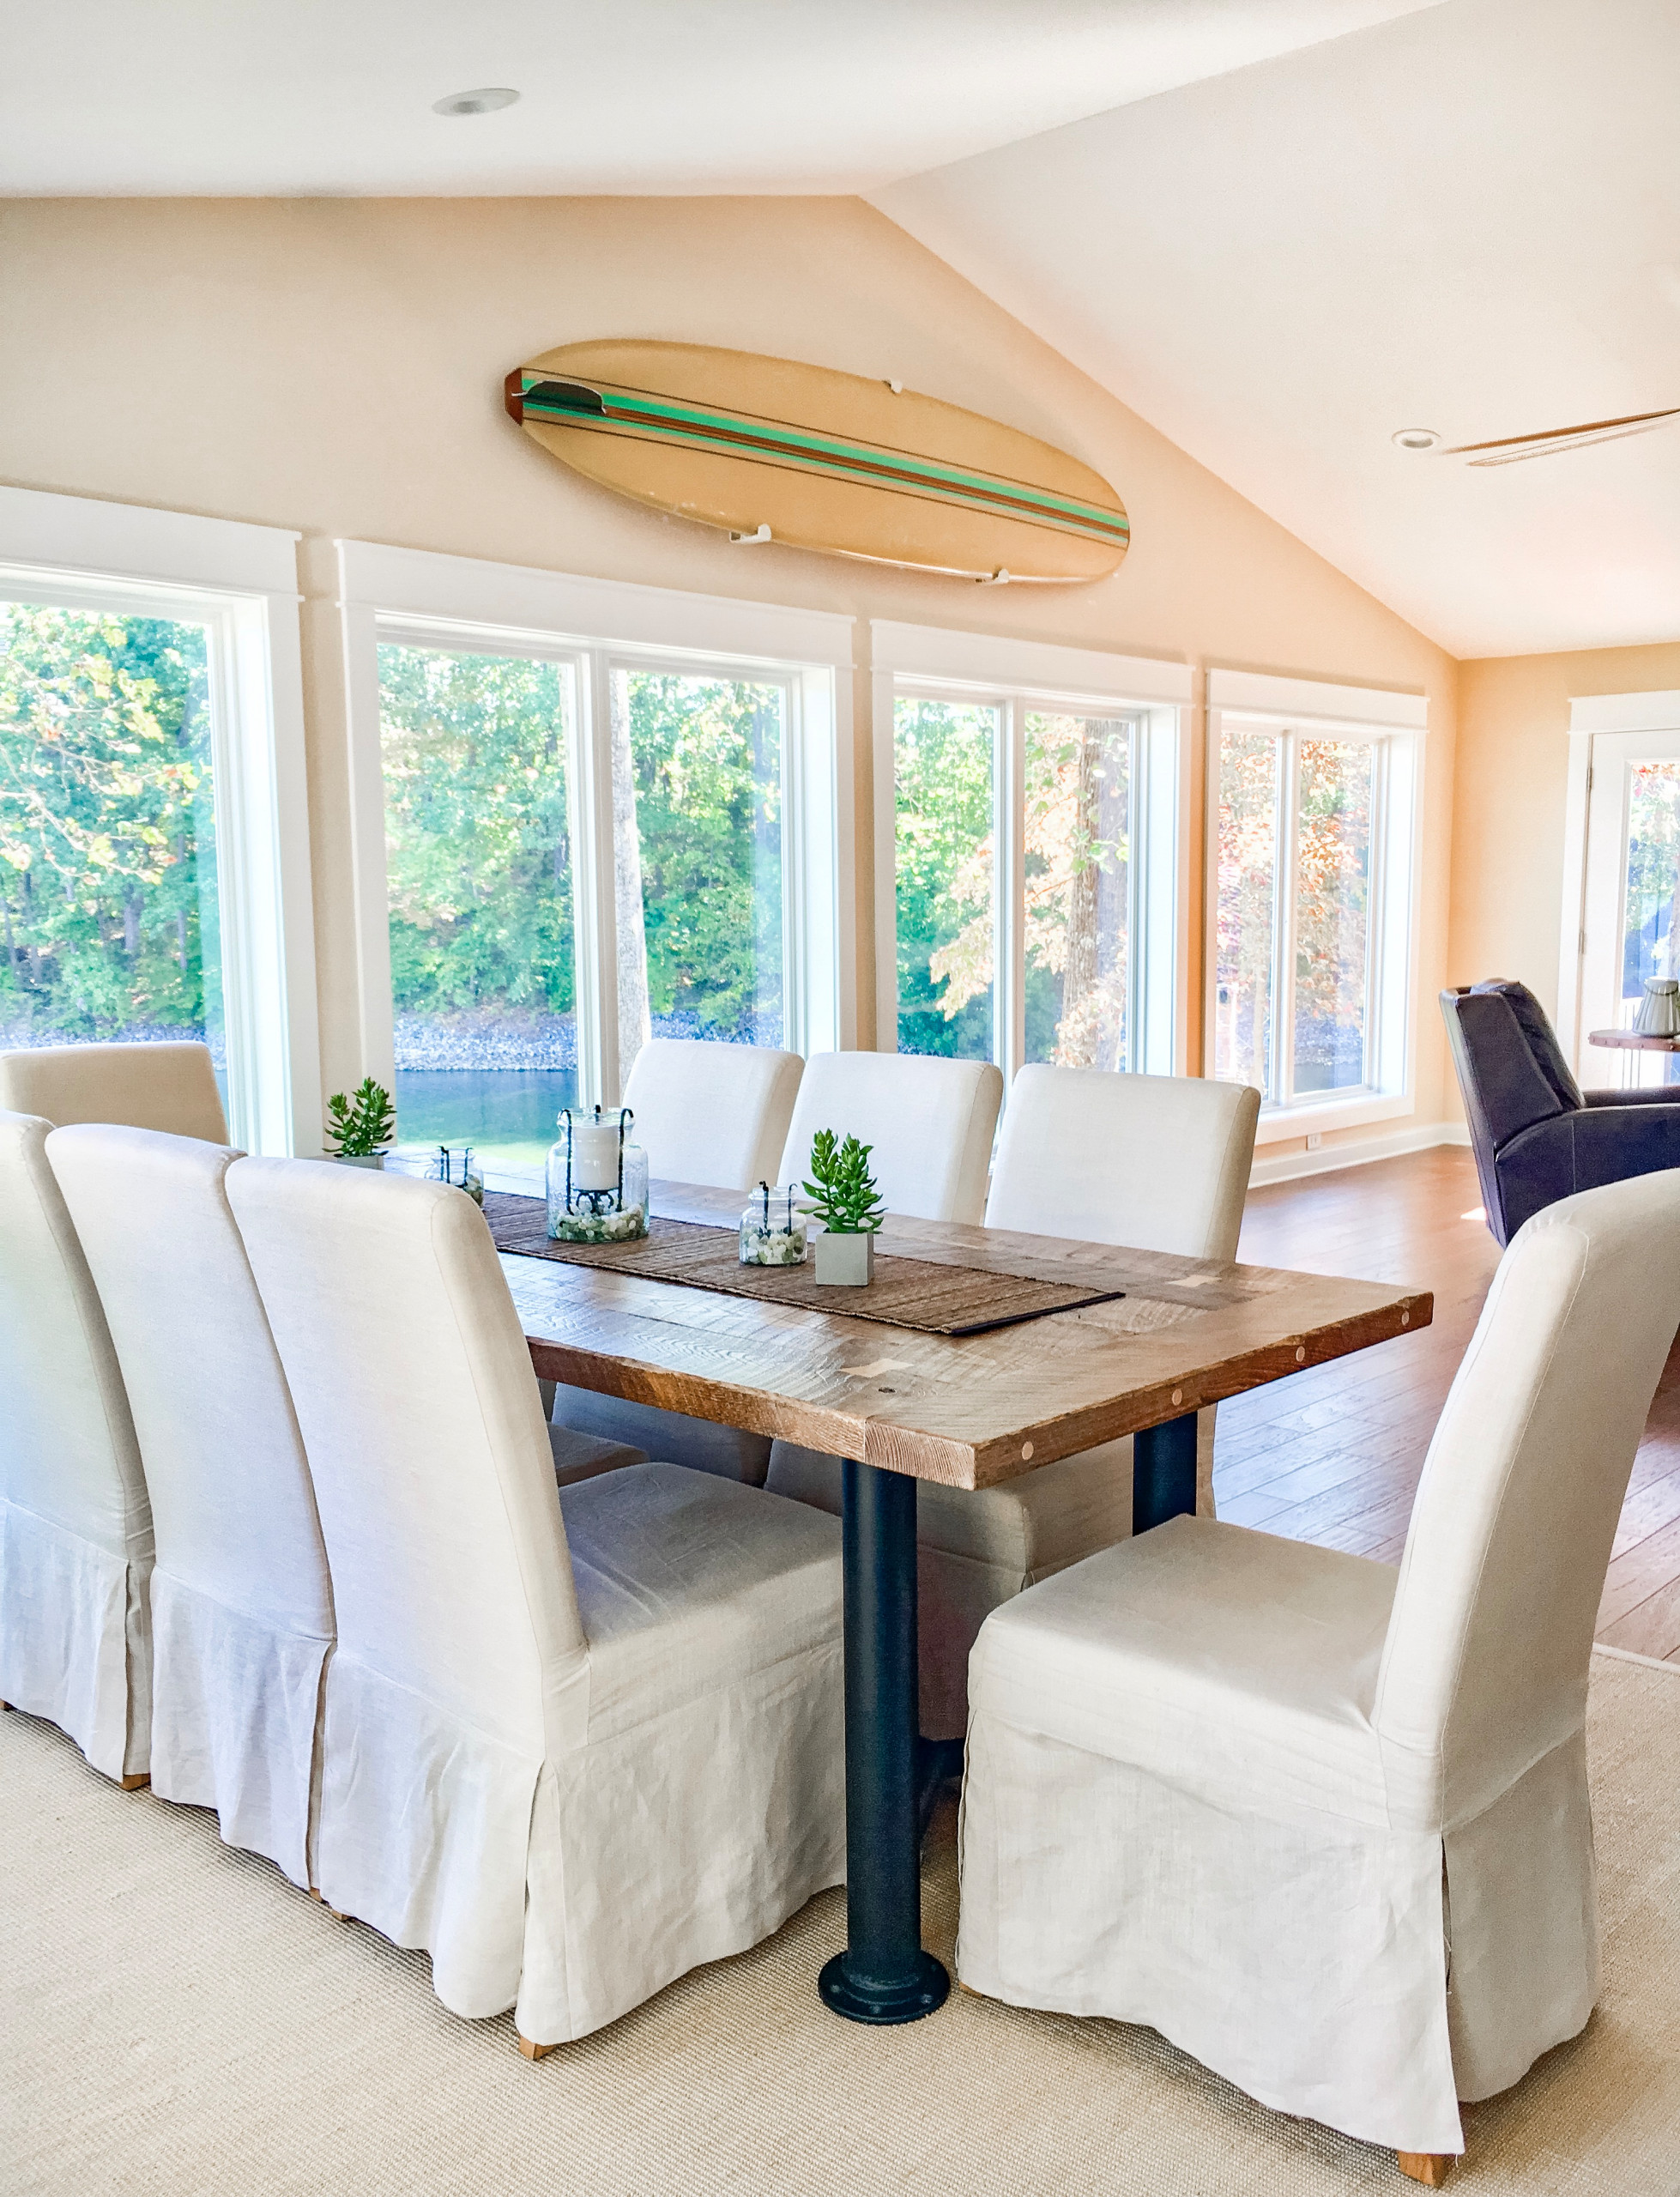 Lake front cotttage - bringing the outdoors in on Lake Norman